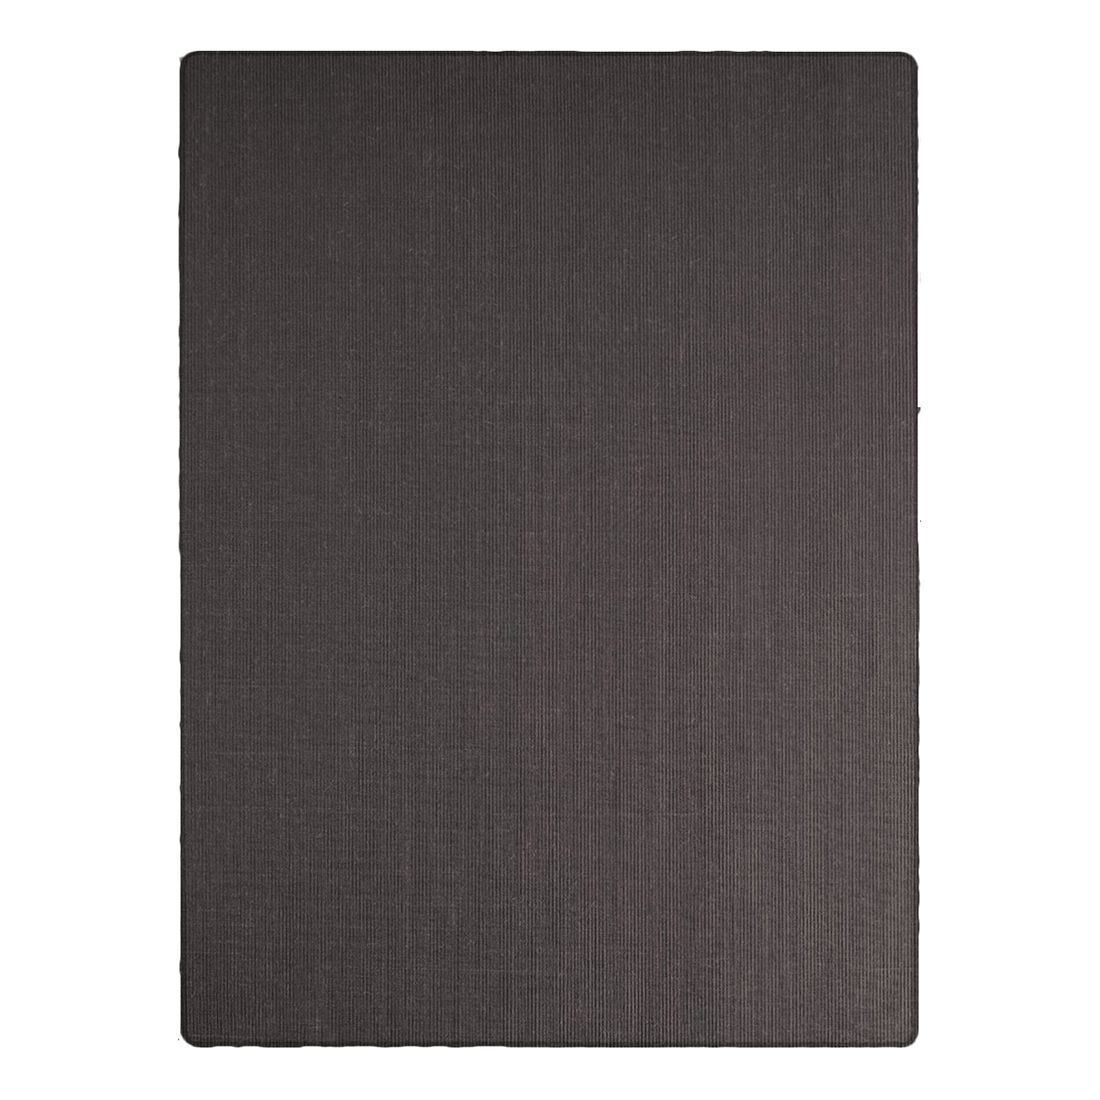 teppich rund 150 perfect mander teppich rund cm beige kunstseide medusa carpet rug versac with. Black Bedroom Furniture Sets. Home Design Ideas